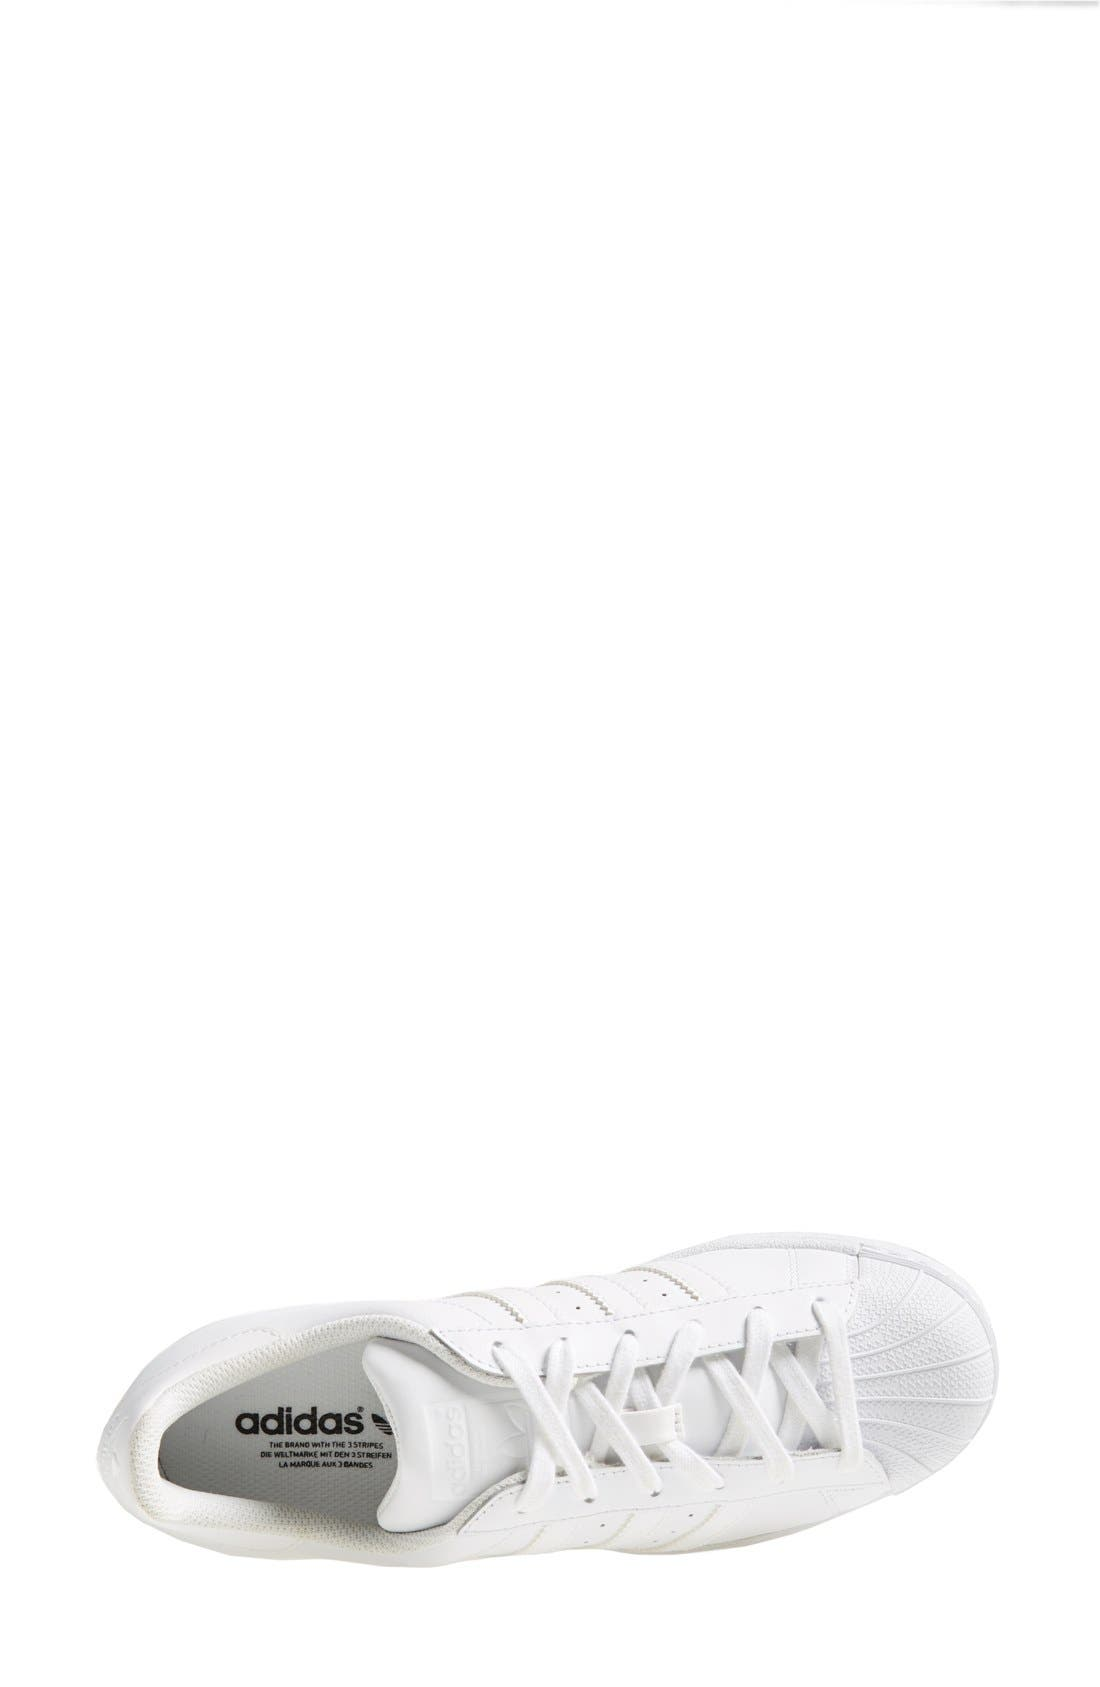 Superstar Sneaker,                             Alternate thumbnail 3, color,                             White